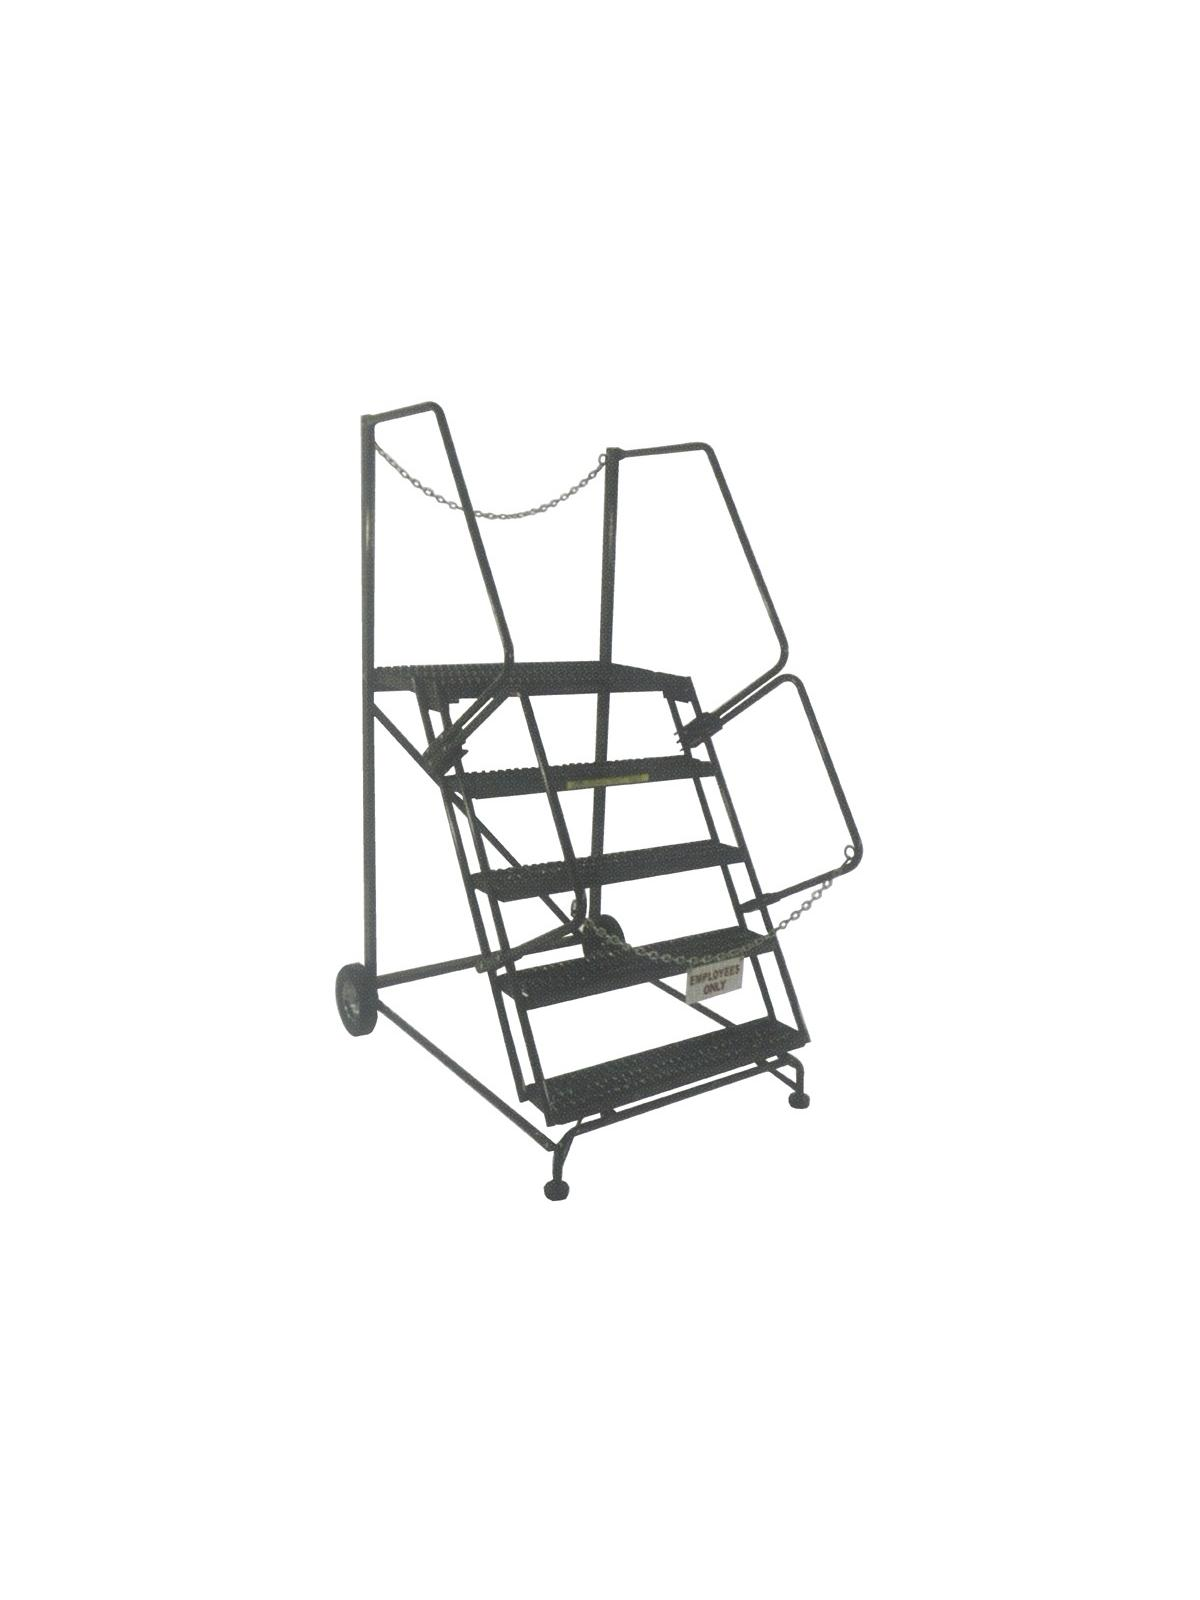 Truck Dock Access Ladder At Nationwide Industrial Supply Llc